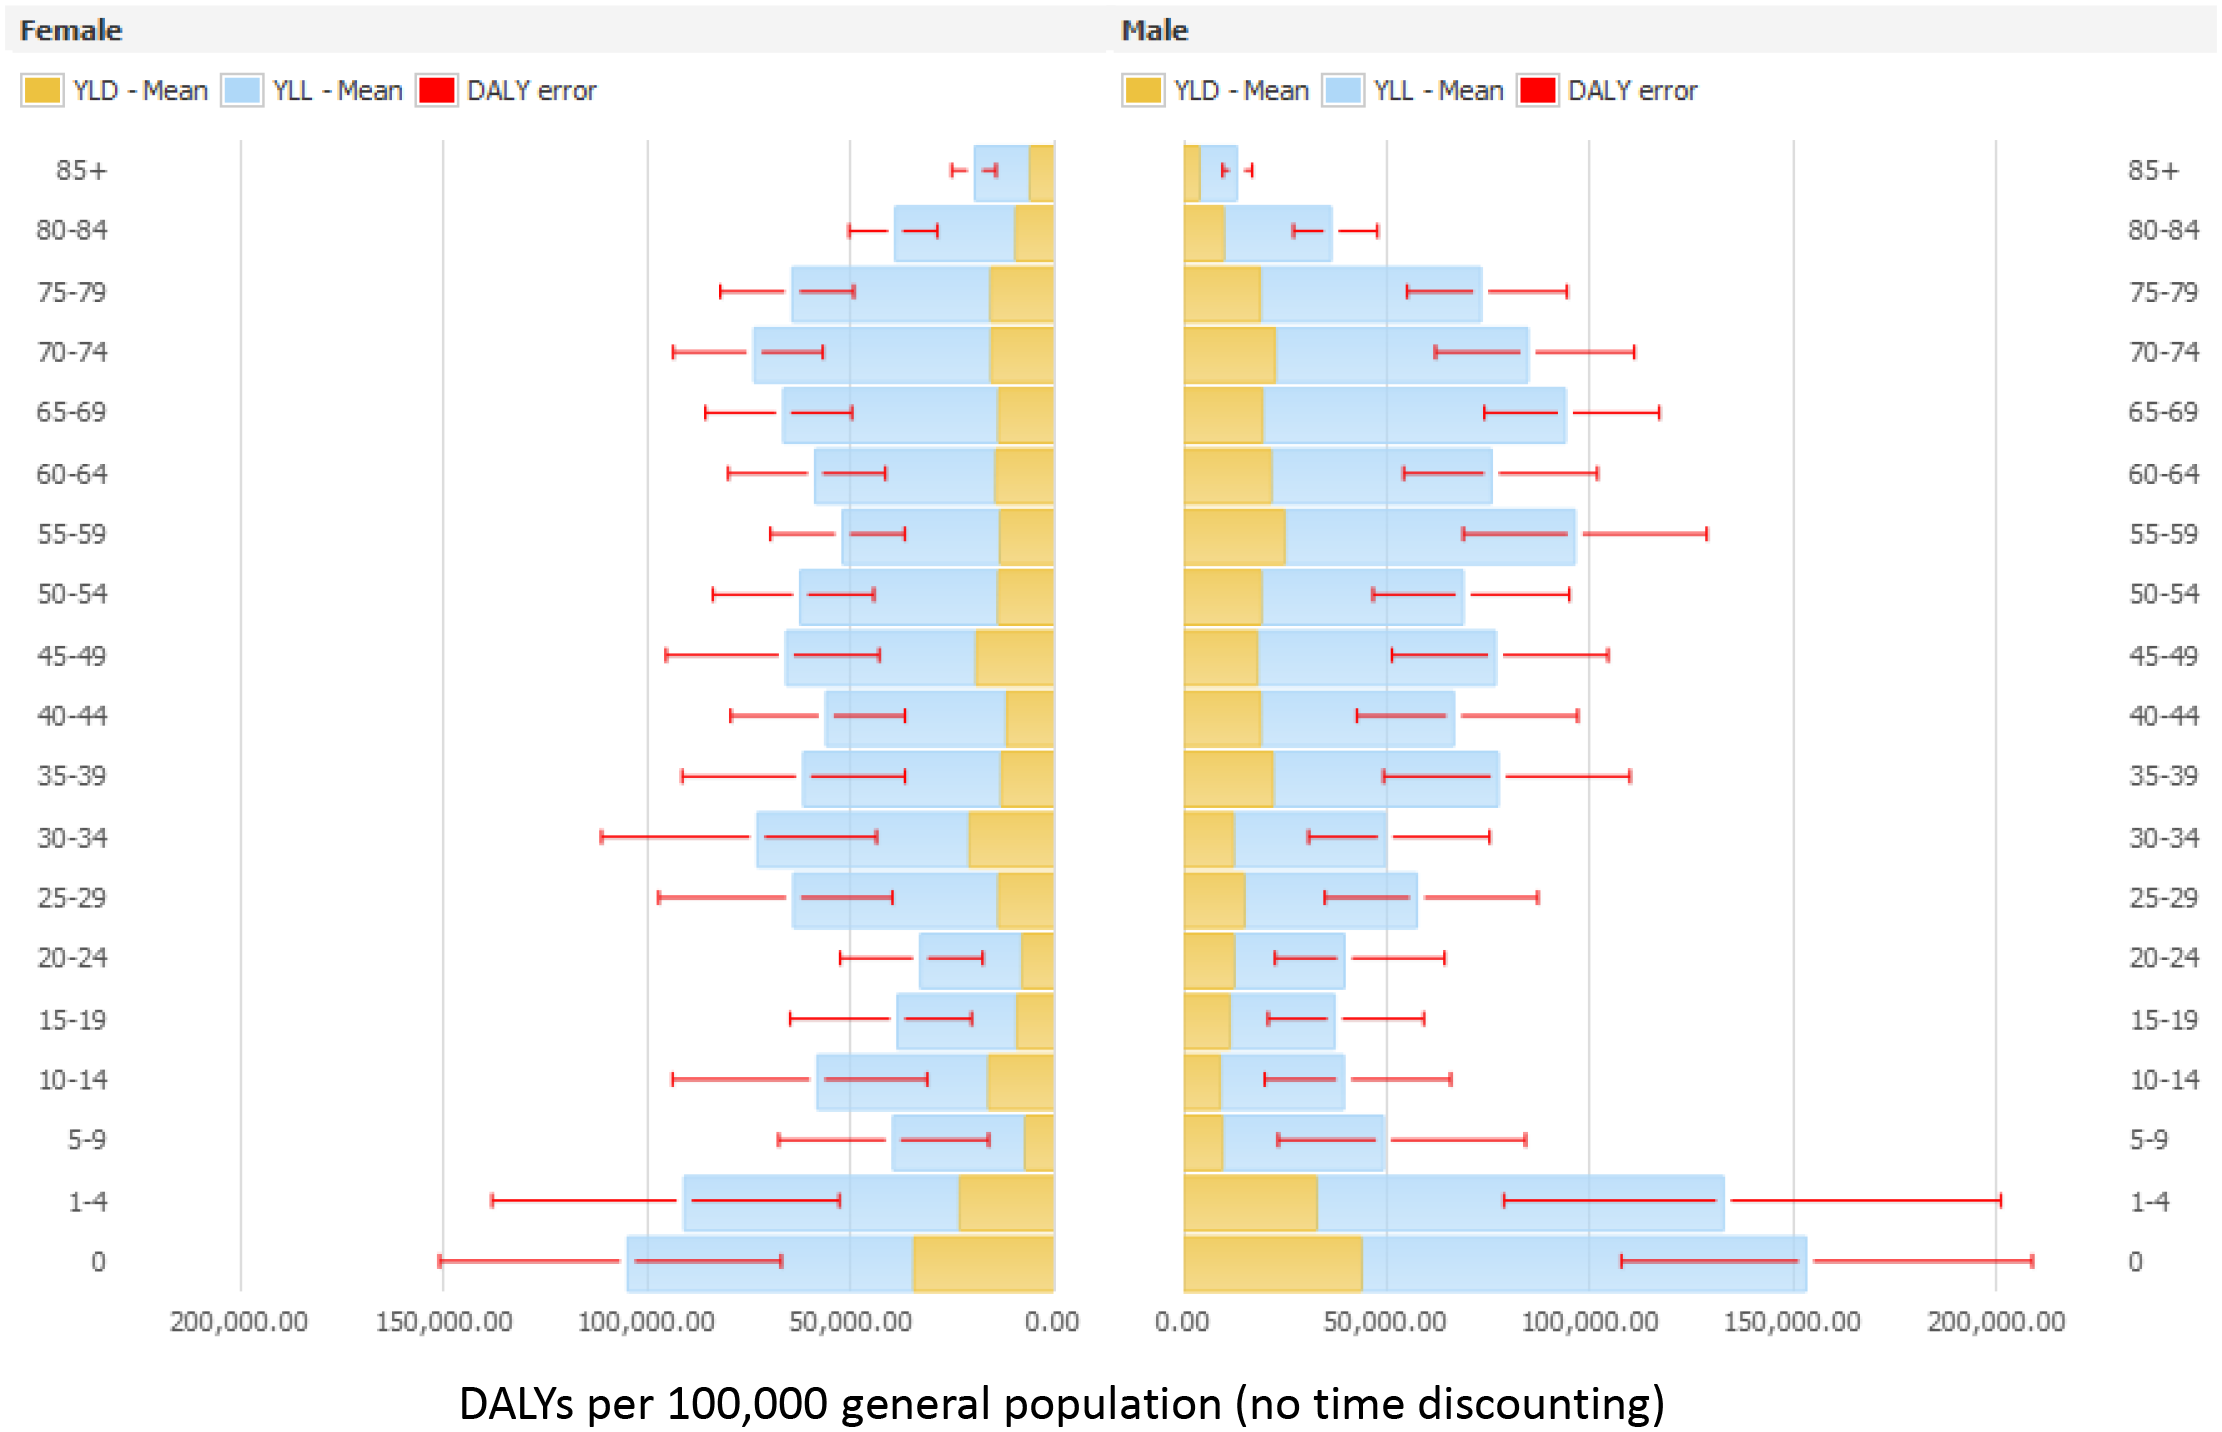 Estimated annual burden of six healthcare-associated infections in DALYs per 100,000 general population (median and 95% uncertainty interval) by gender and age group, split between YLLs and YLDs, EU/EEA, 2011–2012 (time discounting was not applied).